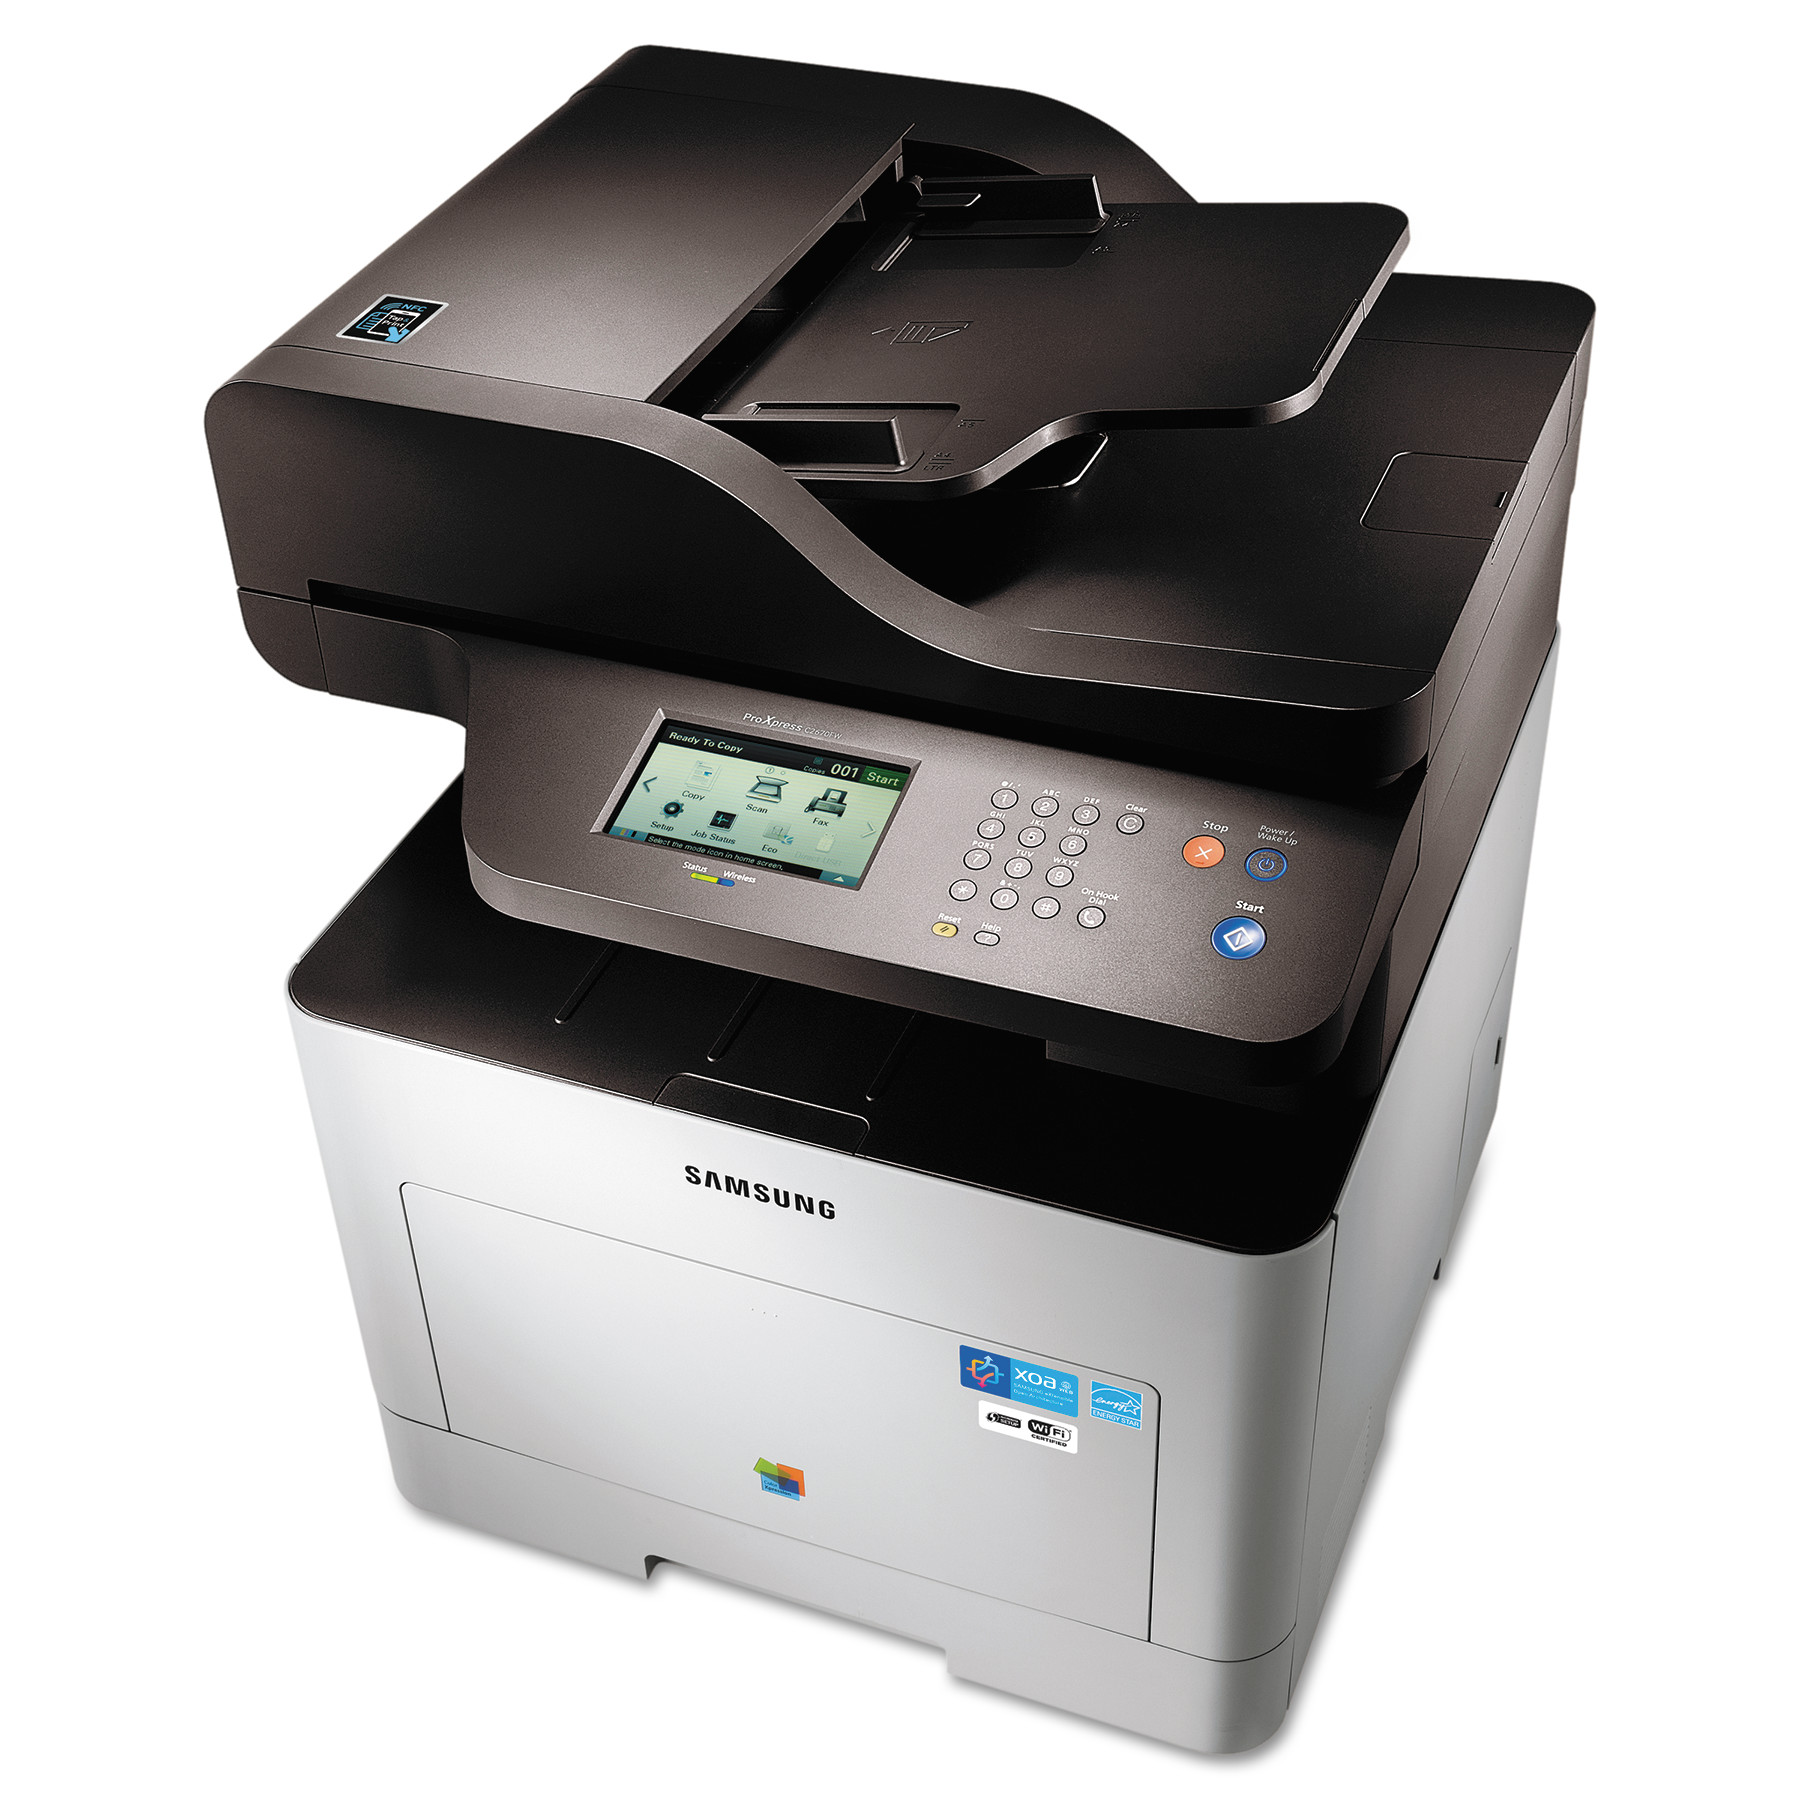 Samsung ProXpress C2670FW Color Wireless Multifunction Printer, Copy Fax Print Scan by Samsung